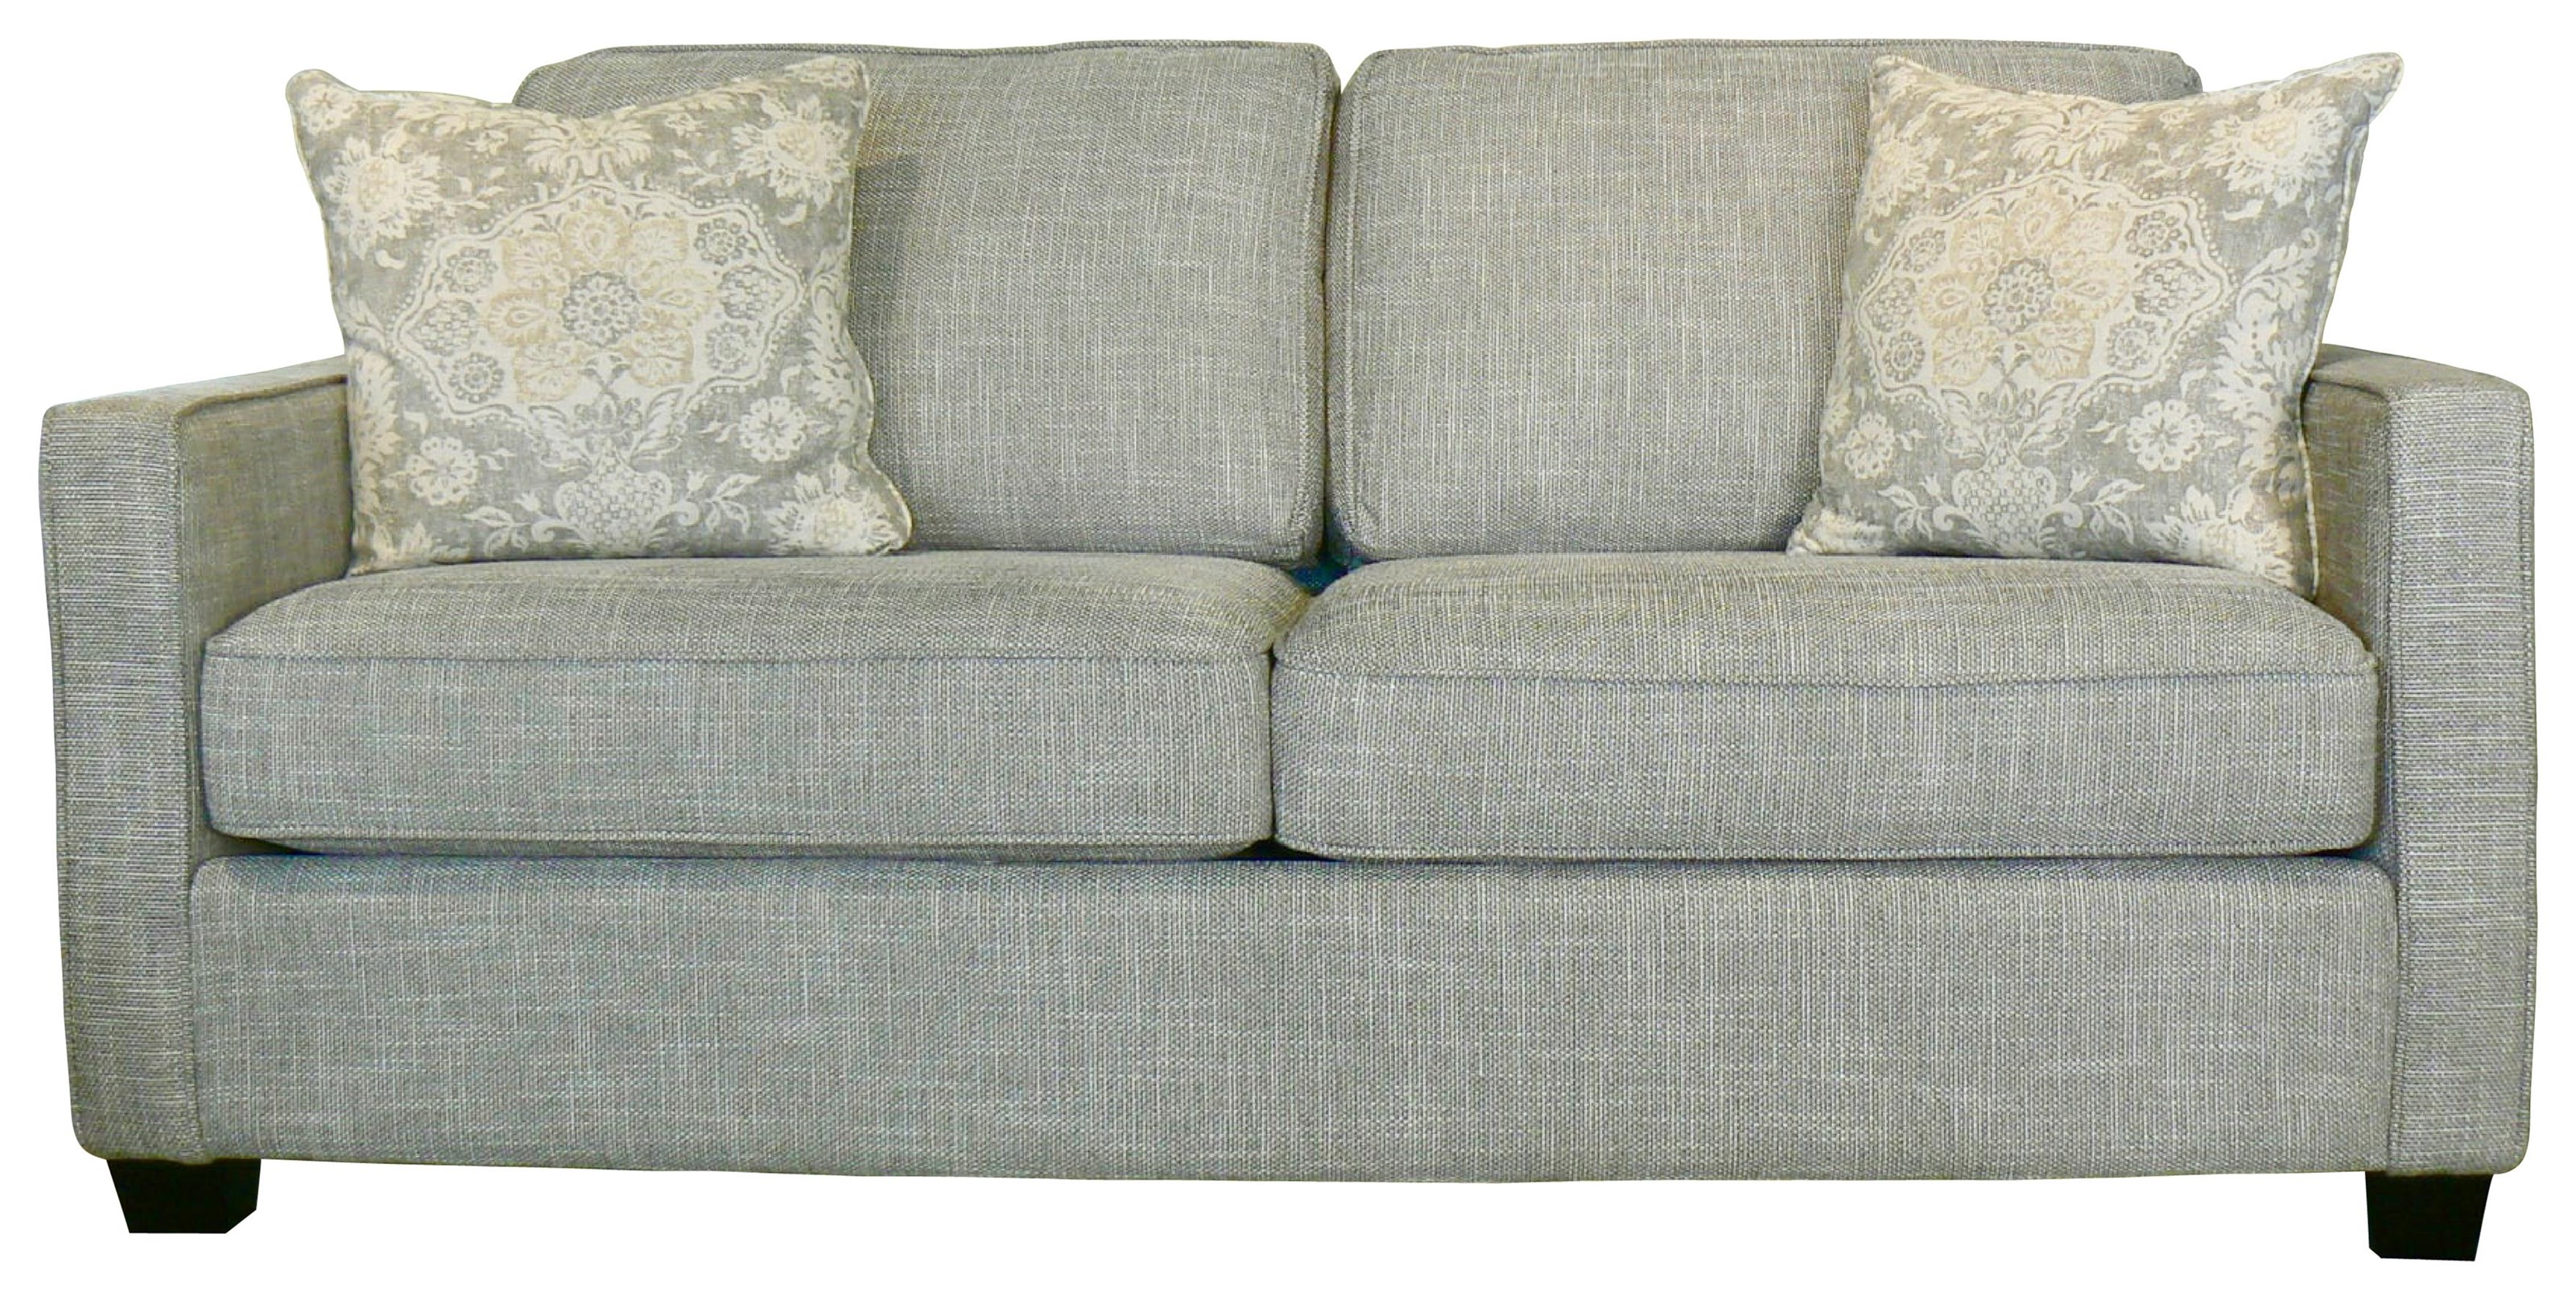 Lara Condo Sofa by Taelor Designs at Bennett's Furniture and Mattresses